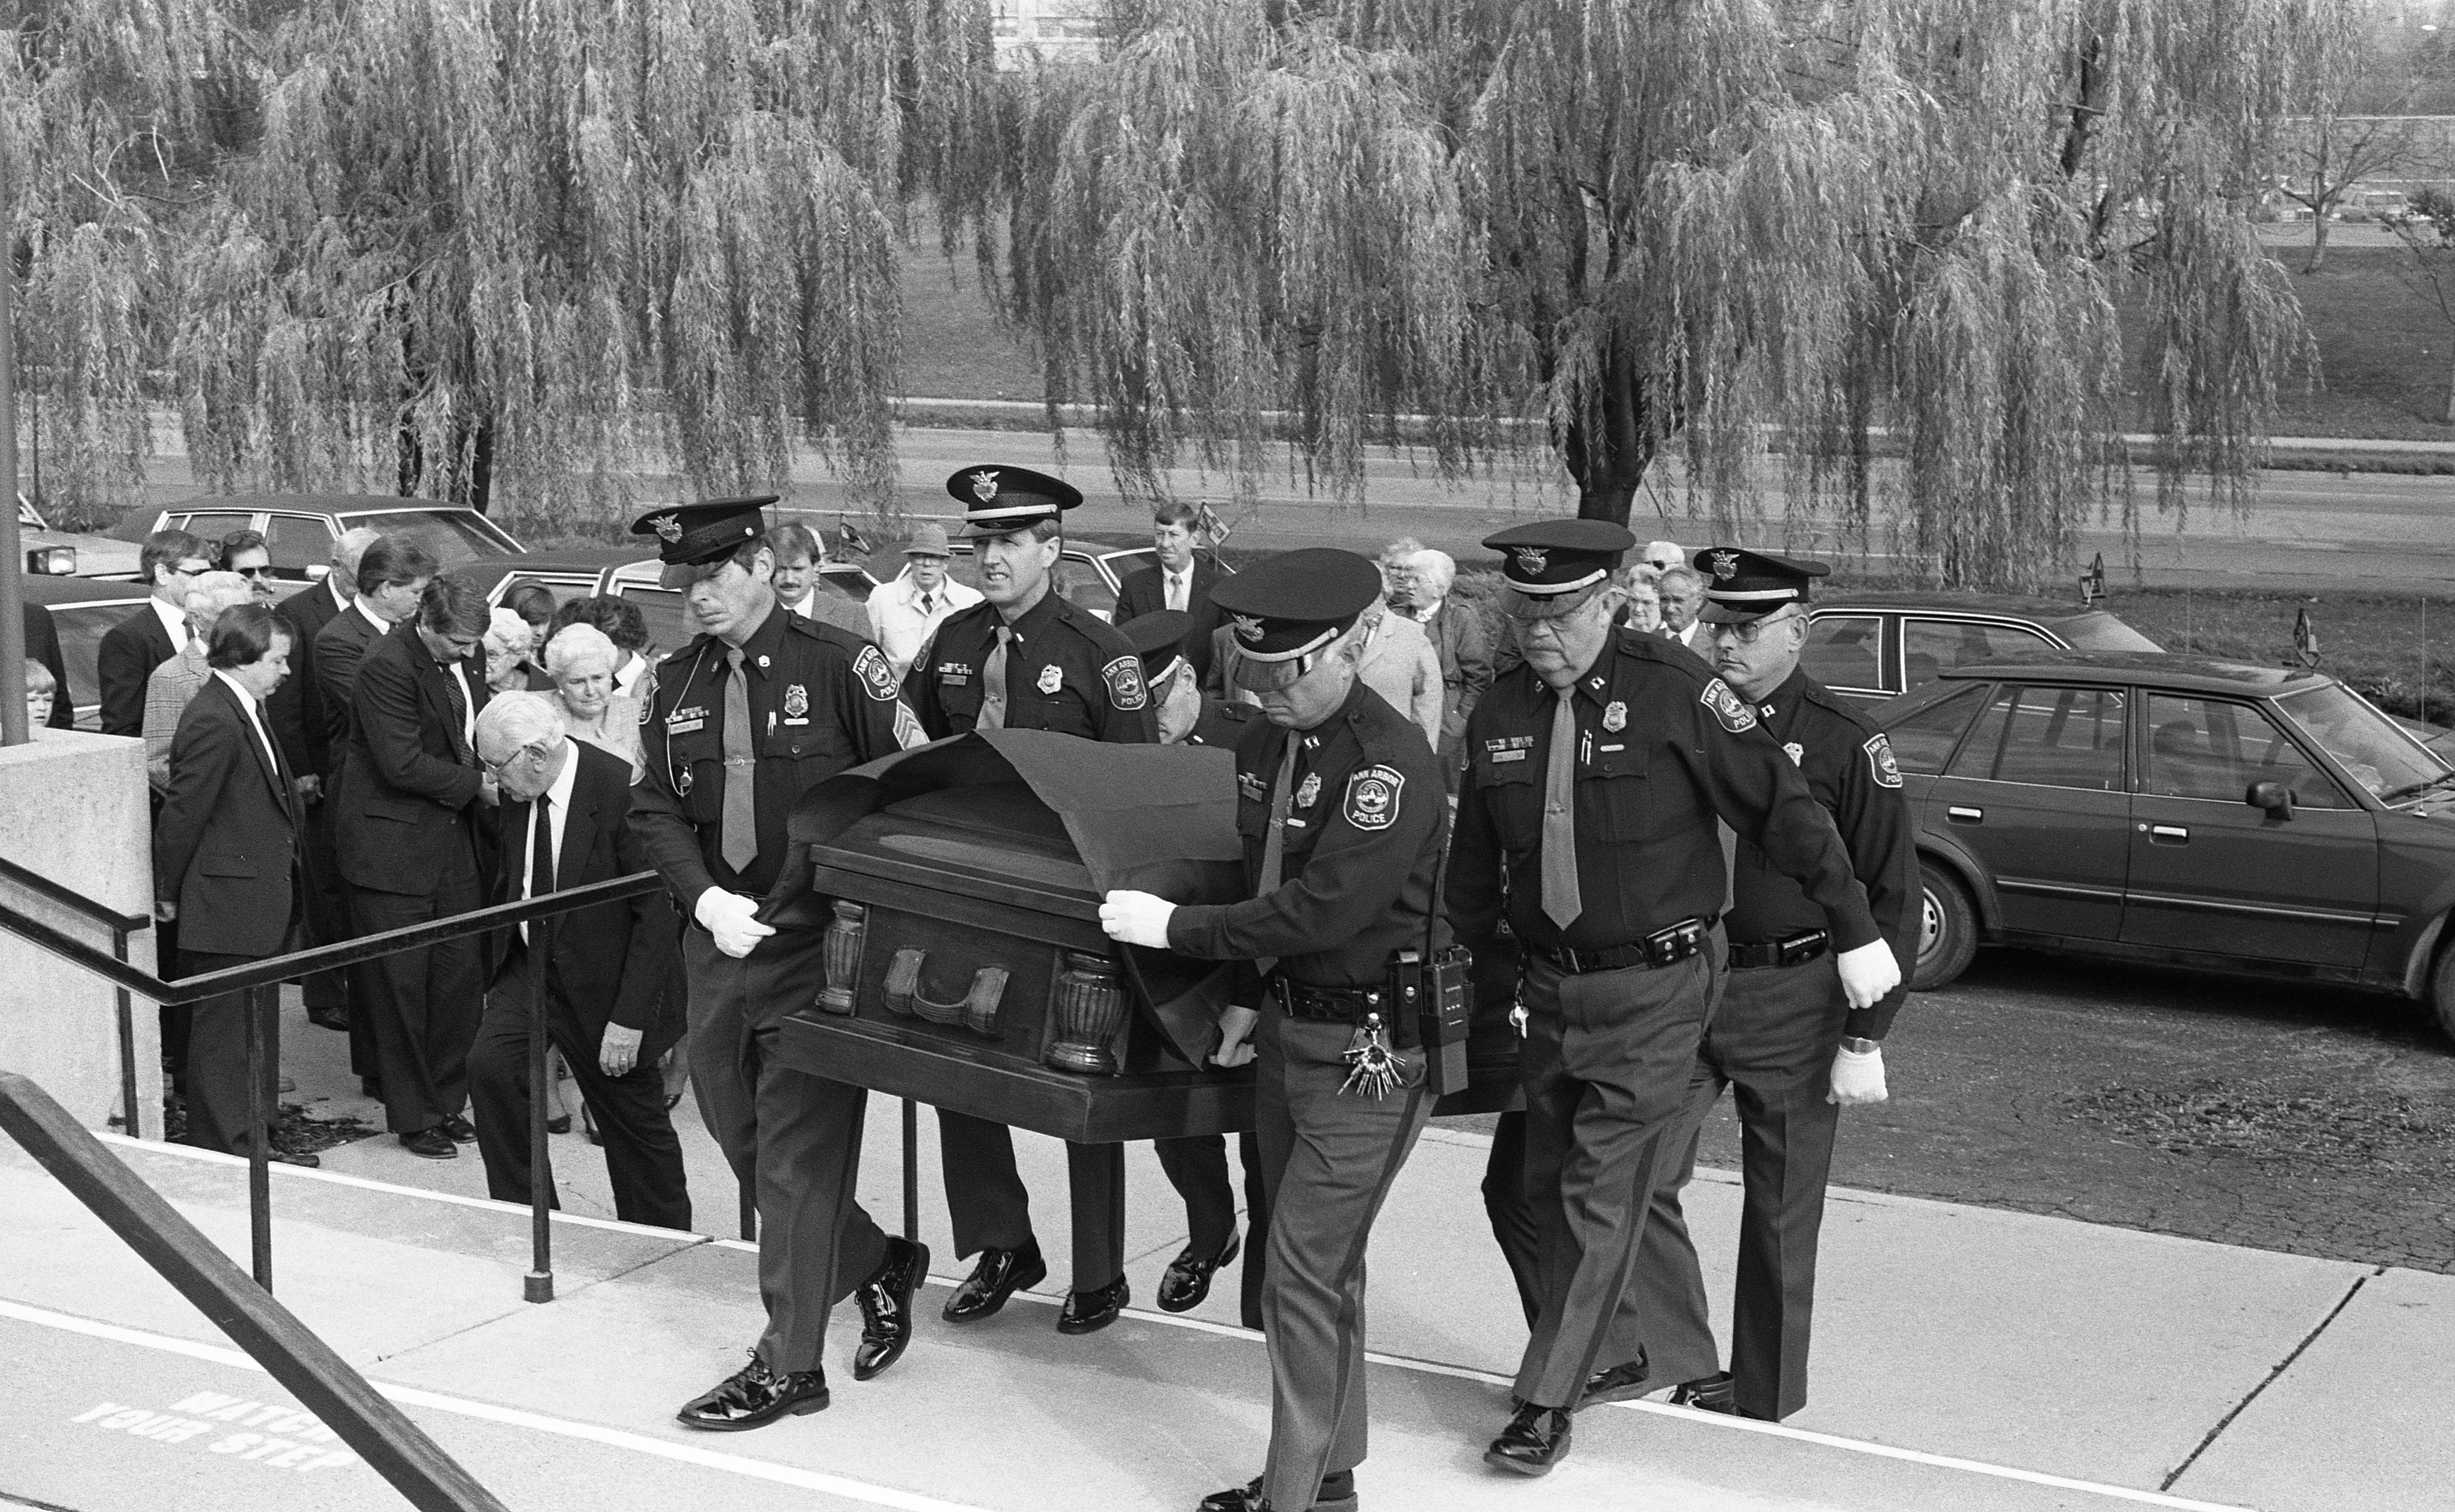 Ann Arbor Police Officers Serve as Pallbearers at Funeral For Ex-Chief Walter E. Krasny, November 1988 image